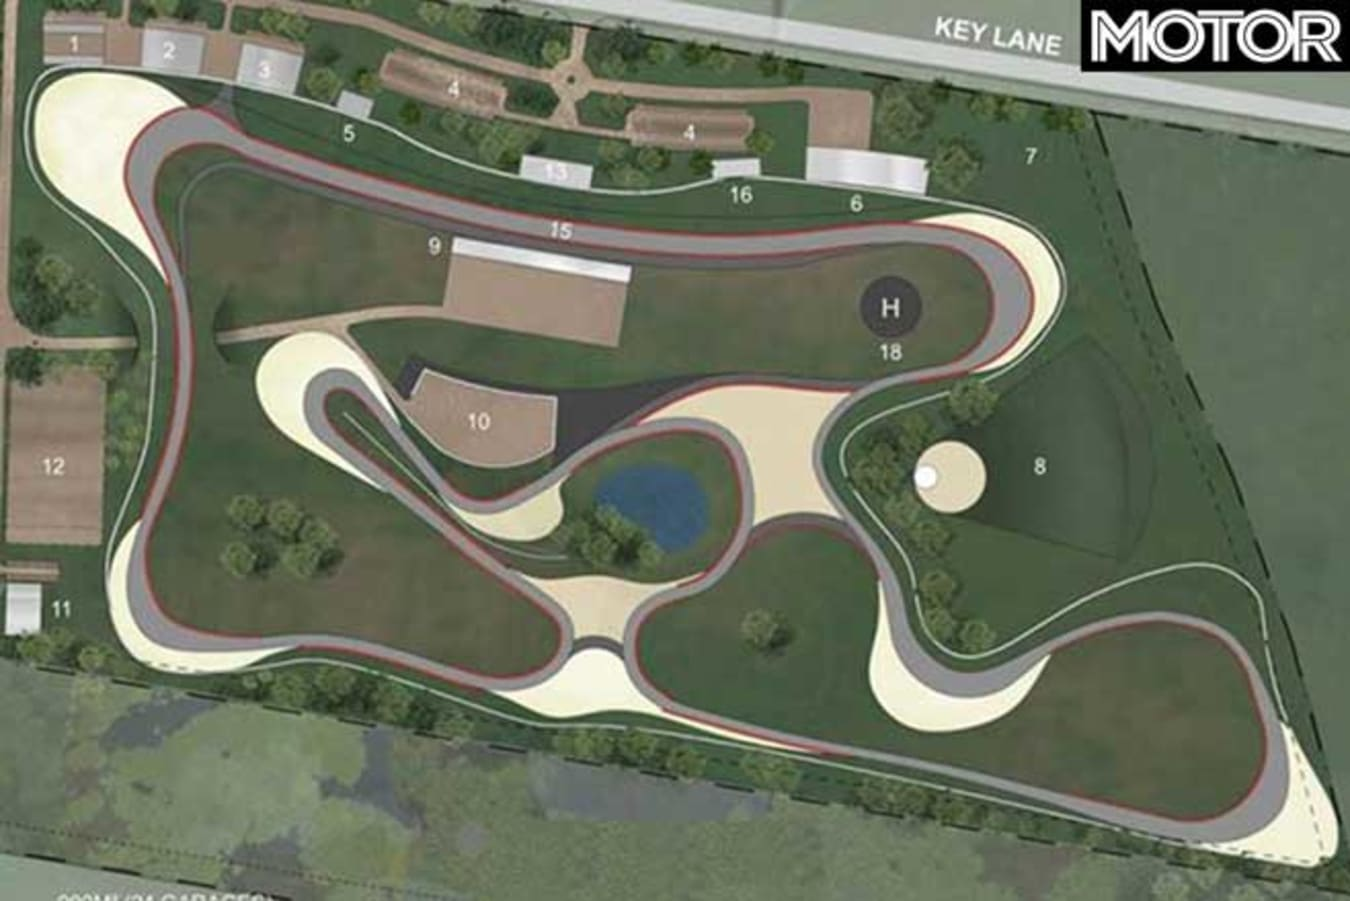 Melbourne Racetrack Cardinia Motor Complex Approved Map Jpg